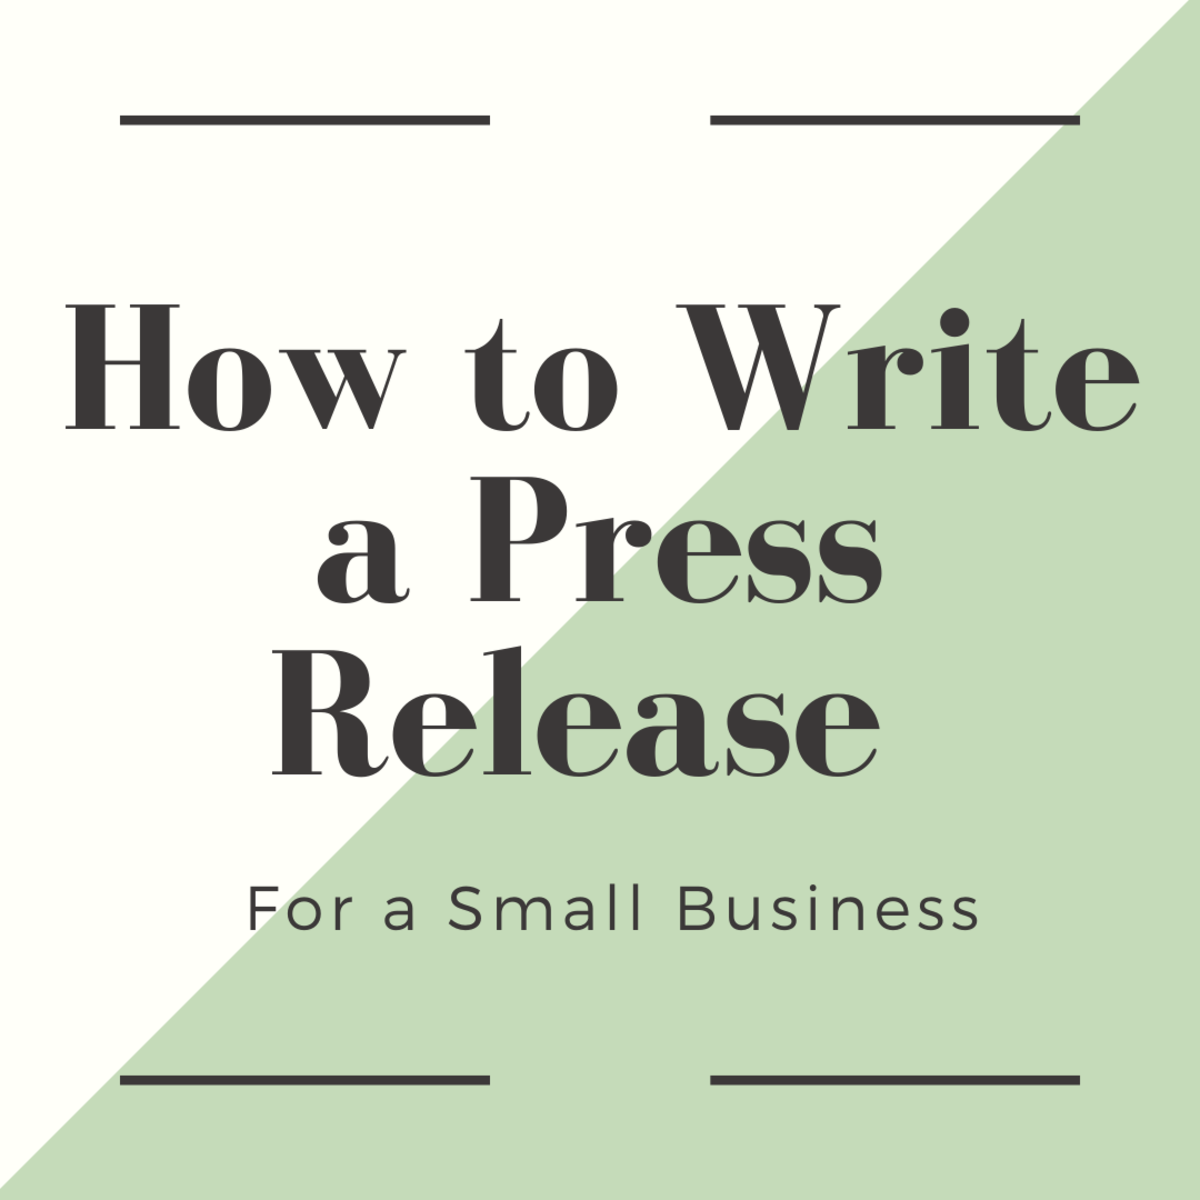 How to Write a Press Release for a Small Business